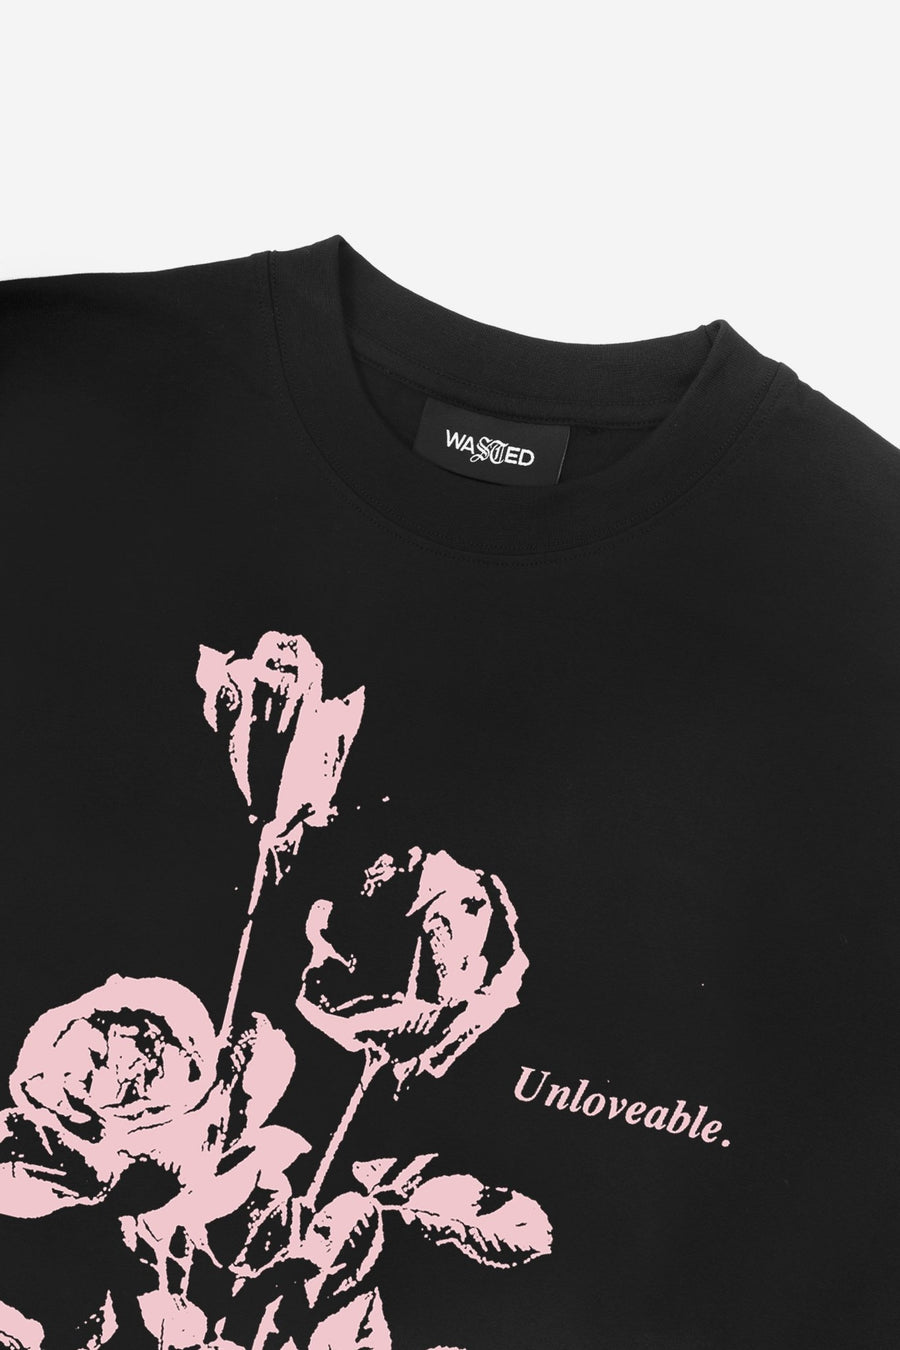 T-shirt Unloveable Noir - WASTED PARIS